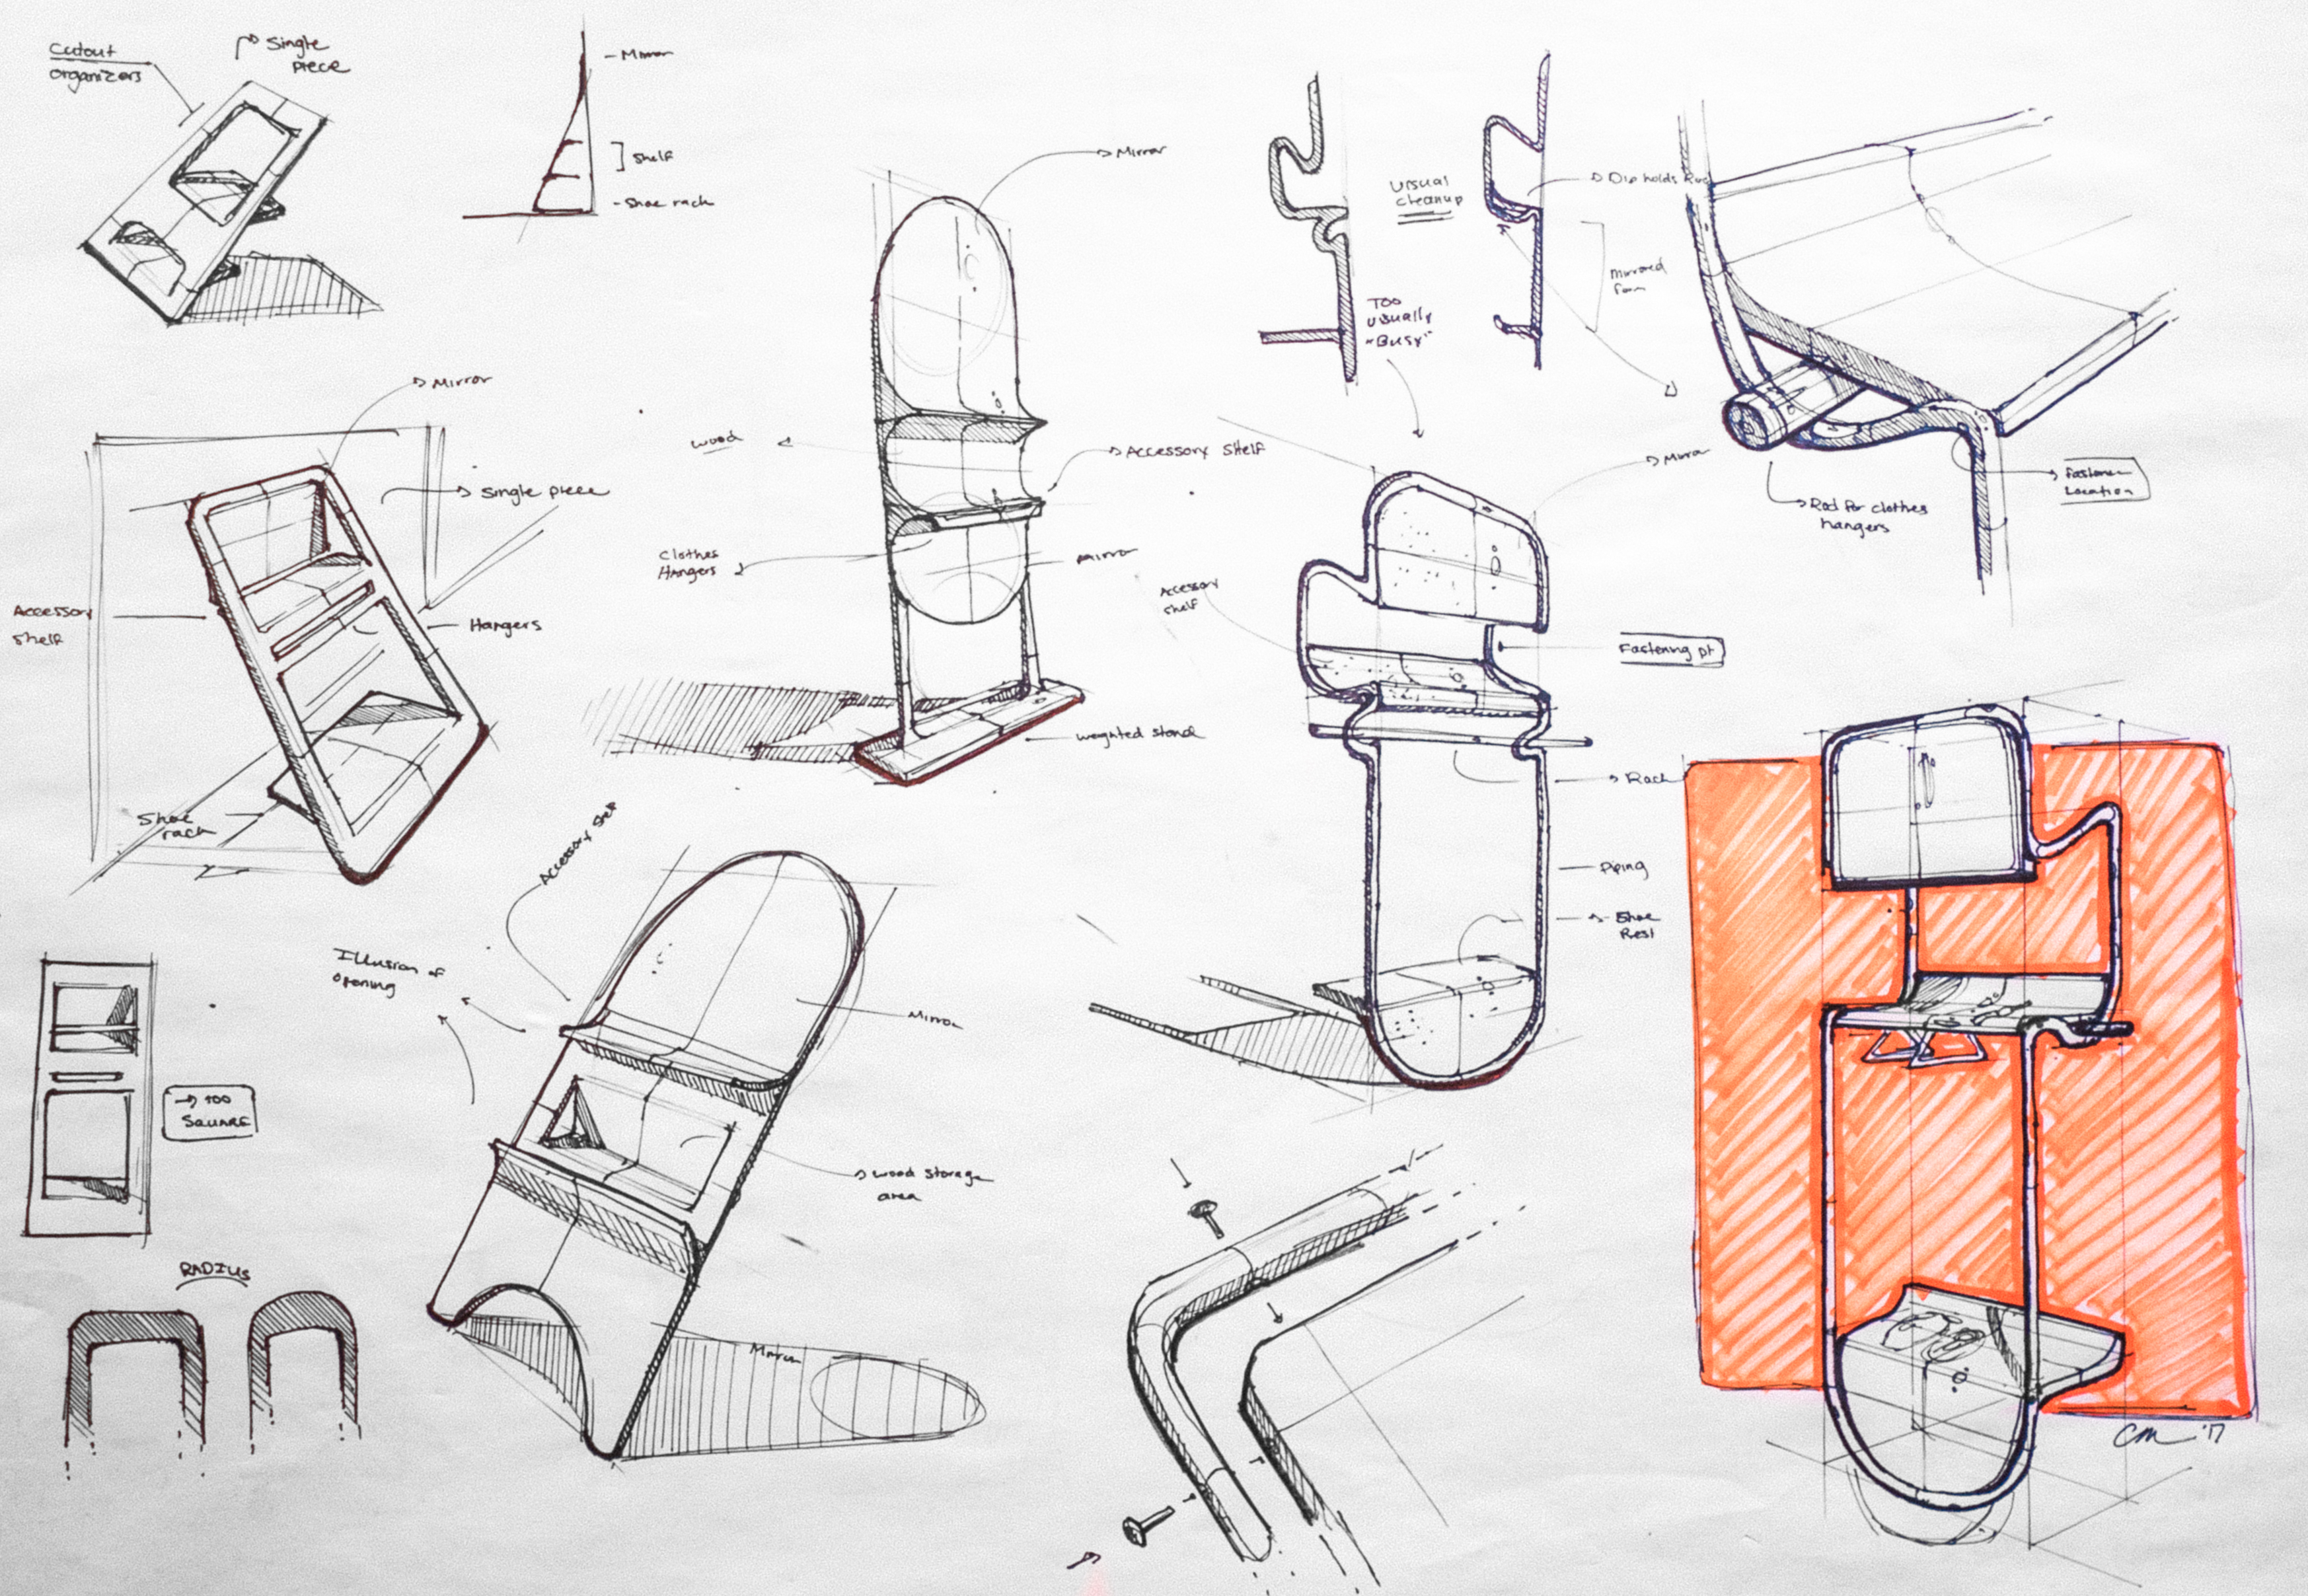 The ideation for Kempt was completed in a single page of sketches, and the entire design was completed in under a day of work. This was a speed exercise.